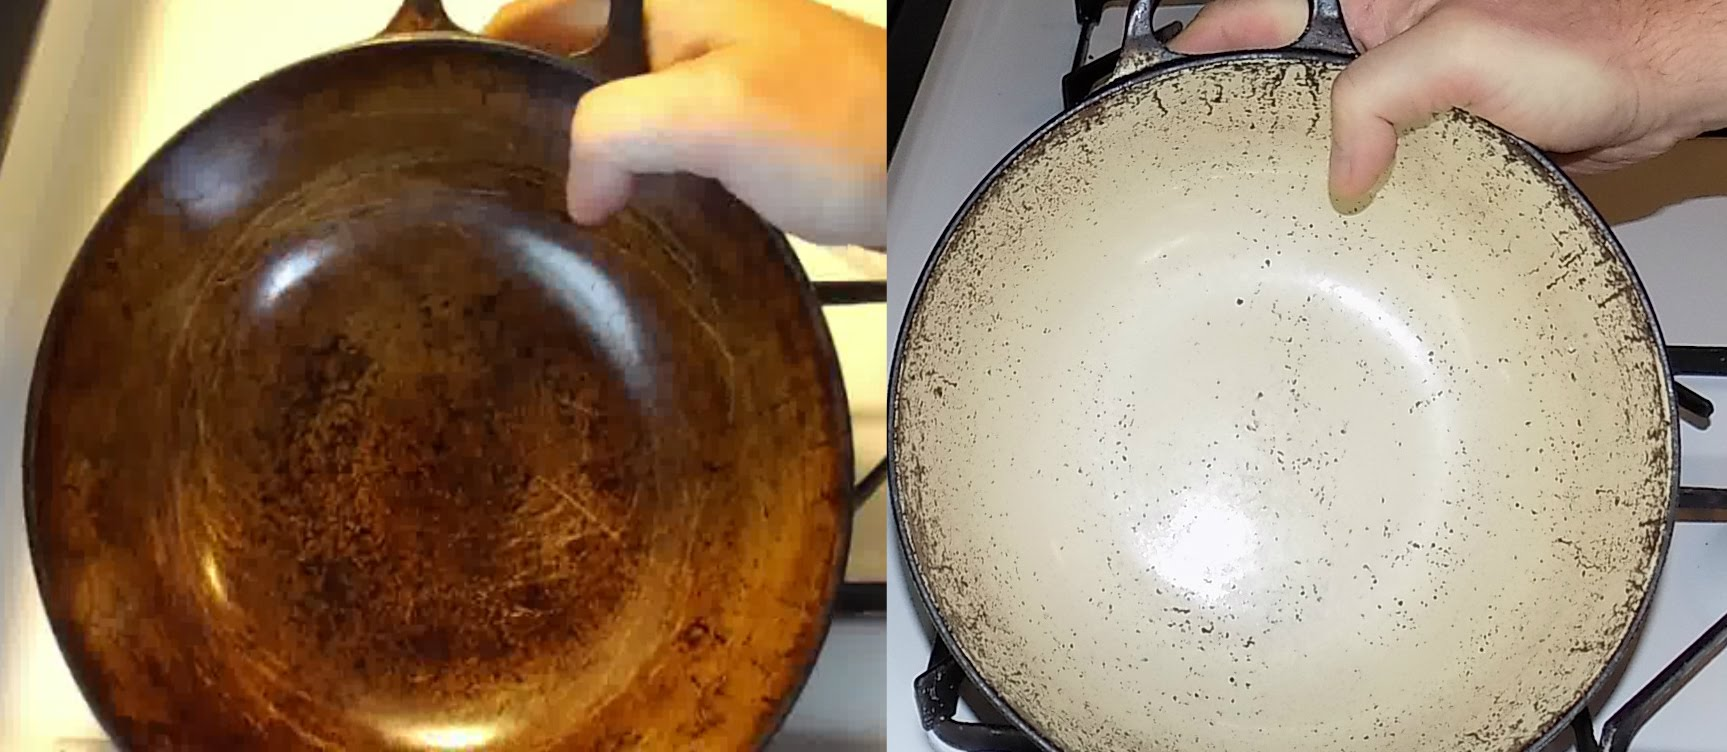 How To Whiten Stained Enamel Cookware In A Few Easy And